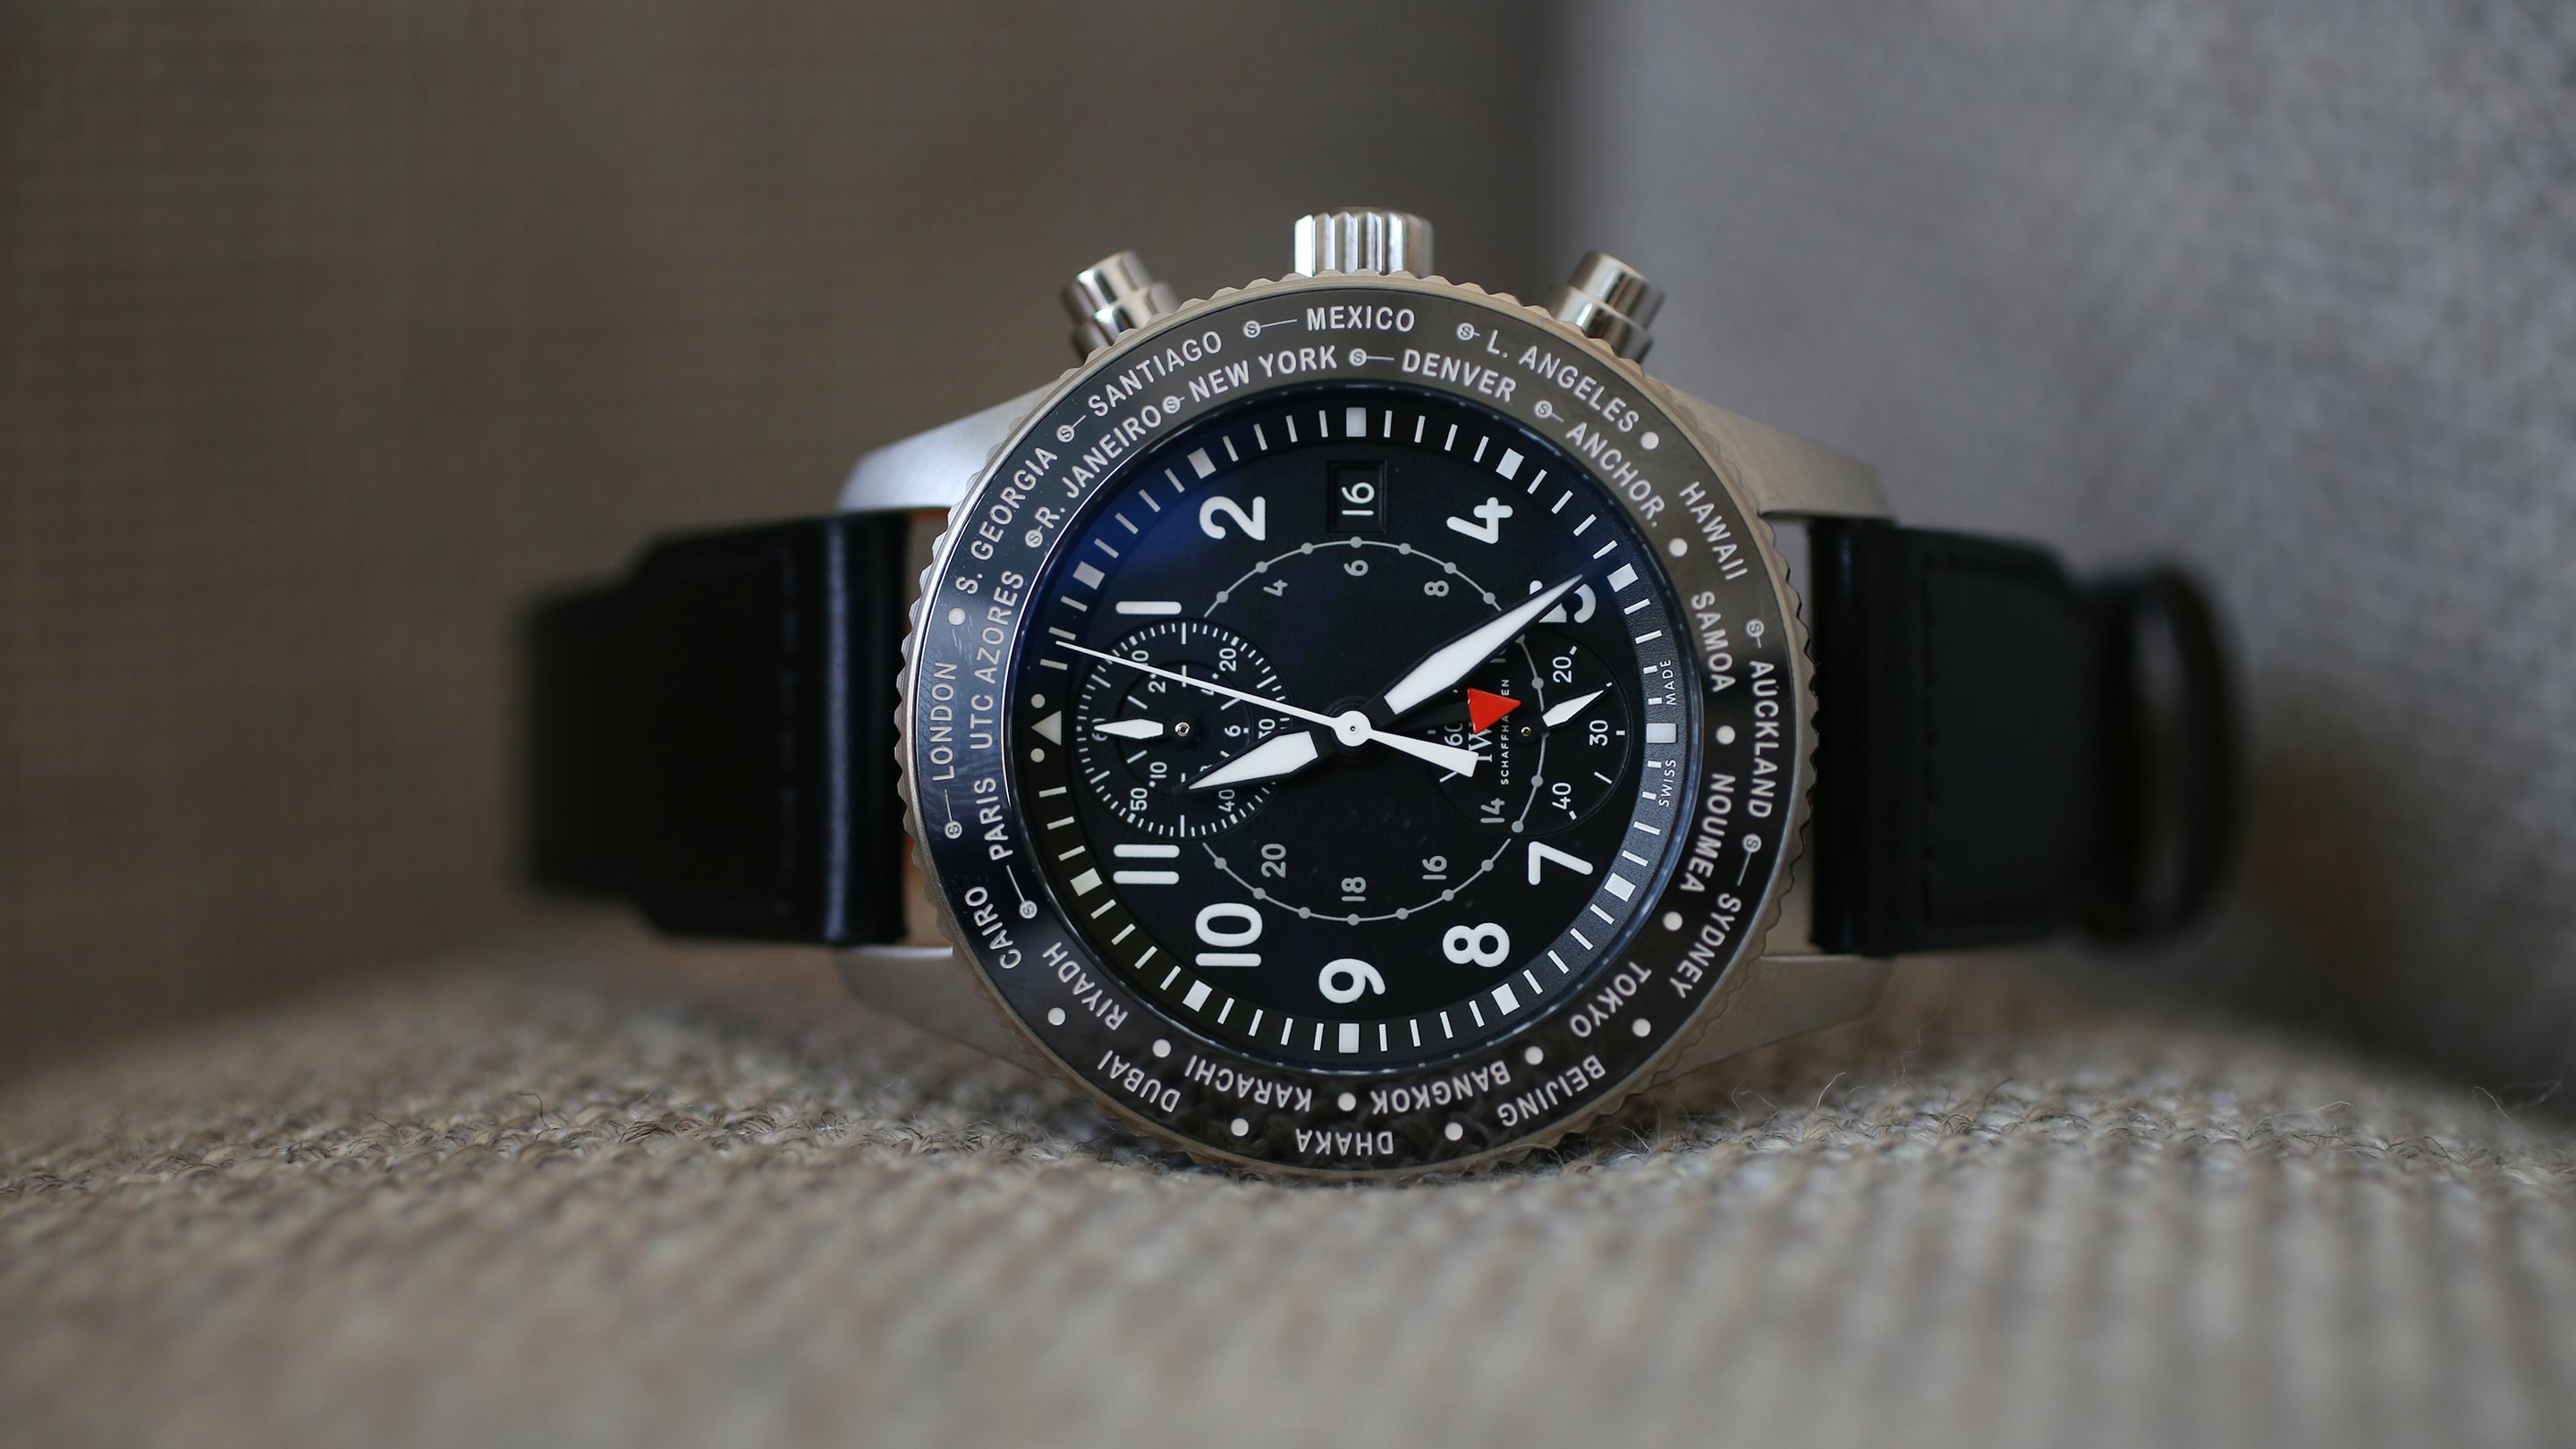 Hands-On: The IWC Pilot's Watch Timezoner Chronograph 3950